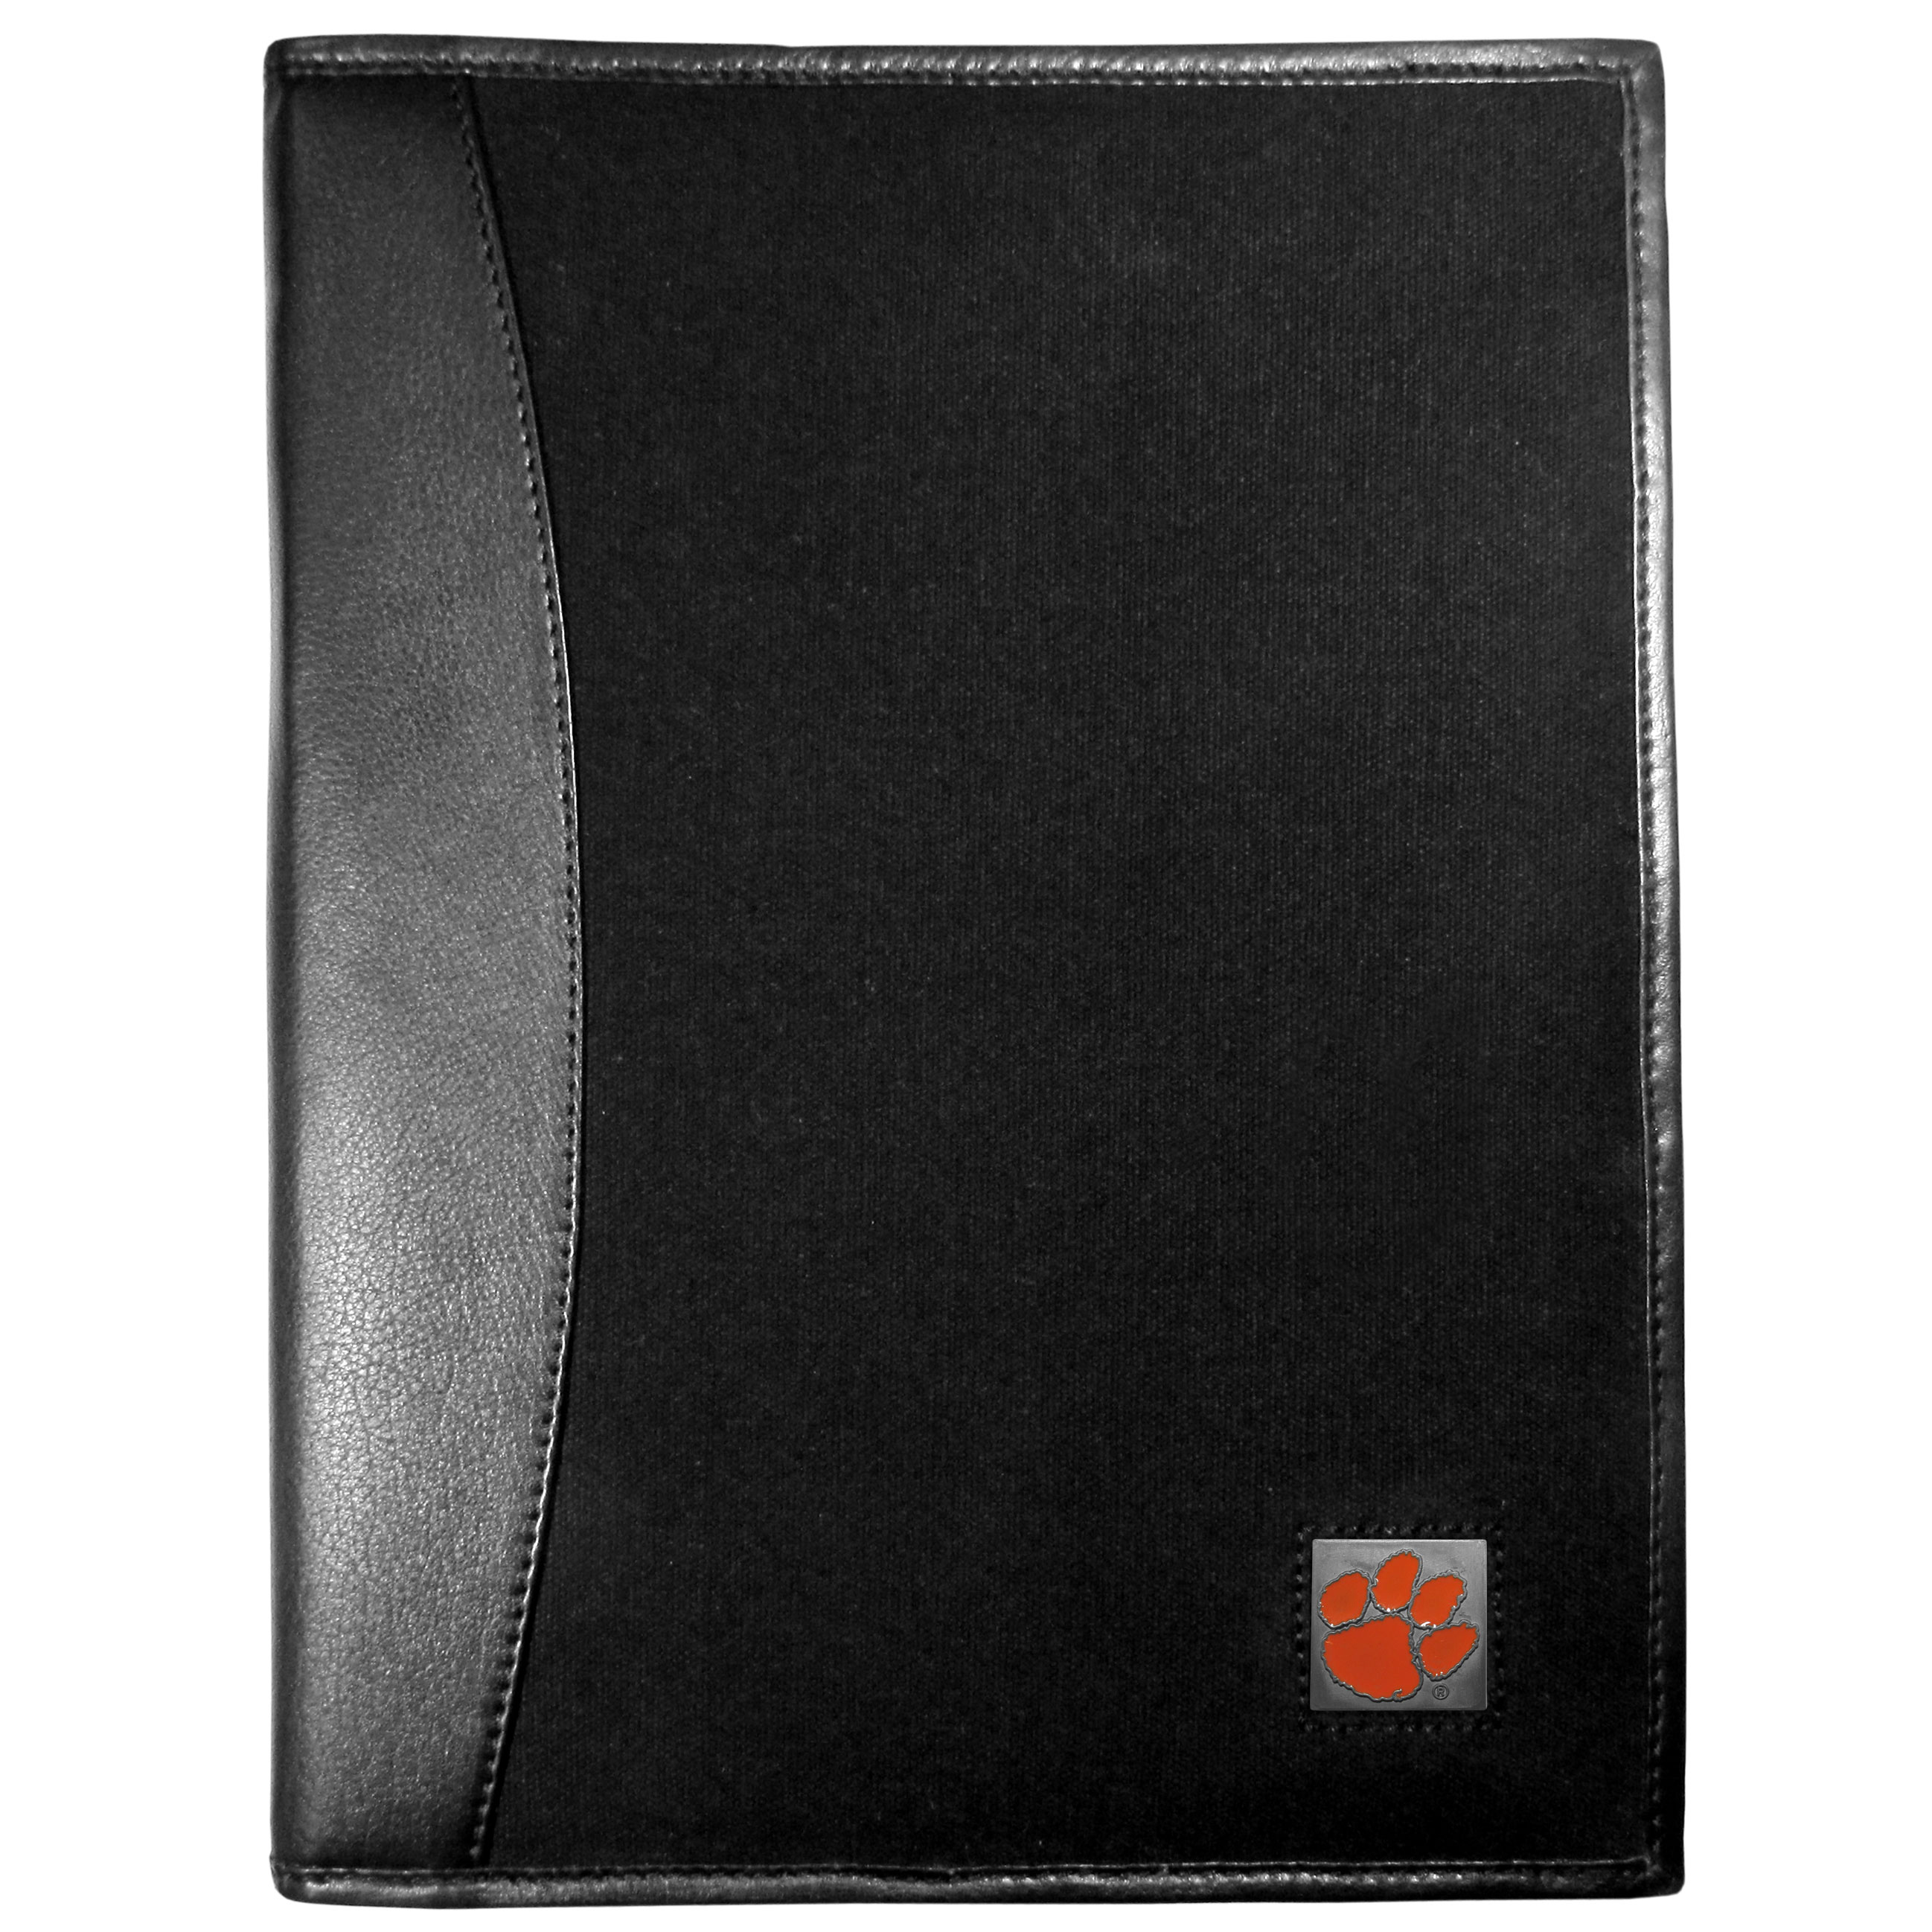 Clemson Tigers Leather and Canvas Padfolio - Our leather and canvas padfolio perfectly blends form and function. The attractive portfolio is bound in fine grain leather with an attractive canvas finish and the interior is a soft nylon. This high quality business accessory also features a fully cast metal Clemson Tigers emblem that is subtly set in the corner of the organizer. It is packed with features like 6 card slots for badges, business cards, hotel keys or credit cards and ID with a large pocket for loose papers and a writing tablet slot making it a must-have for the professional on the go.